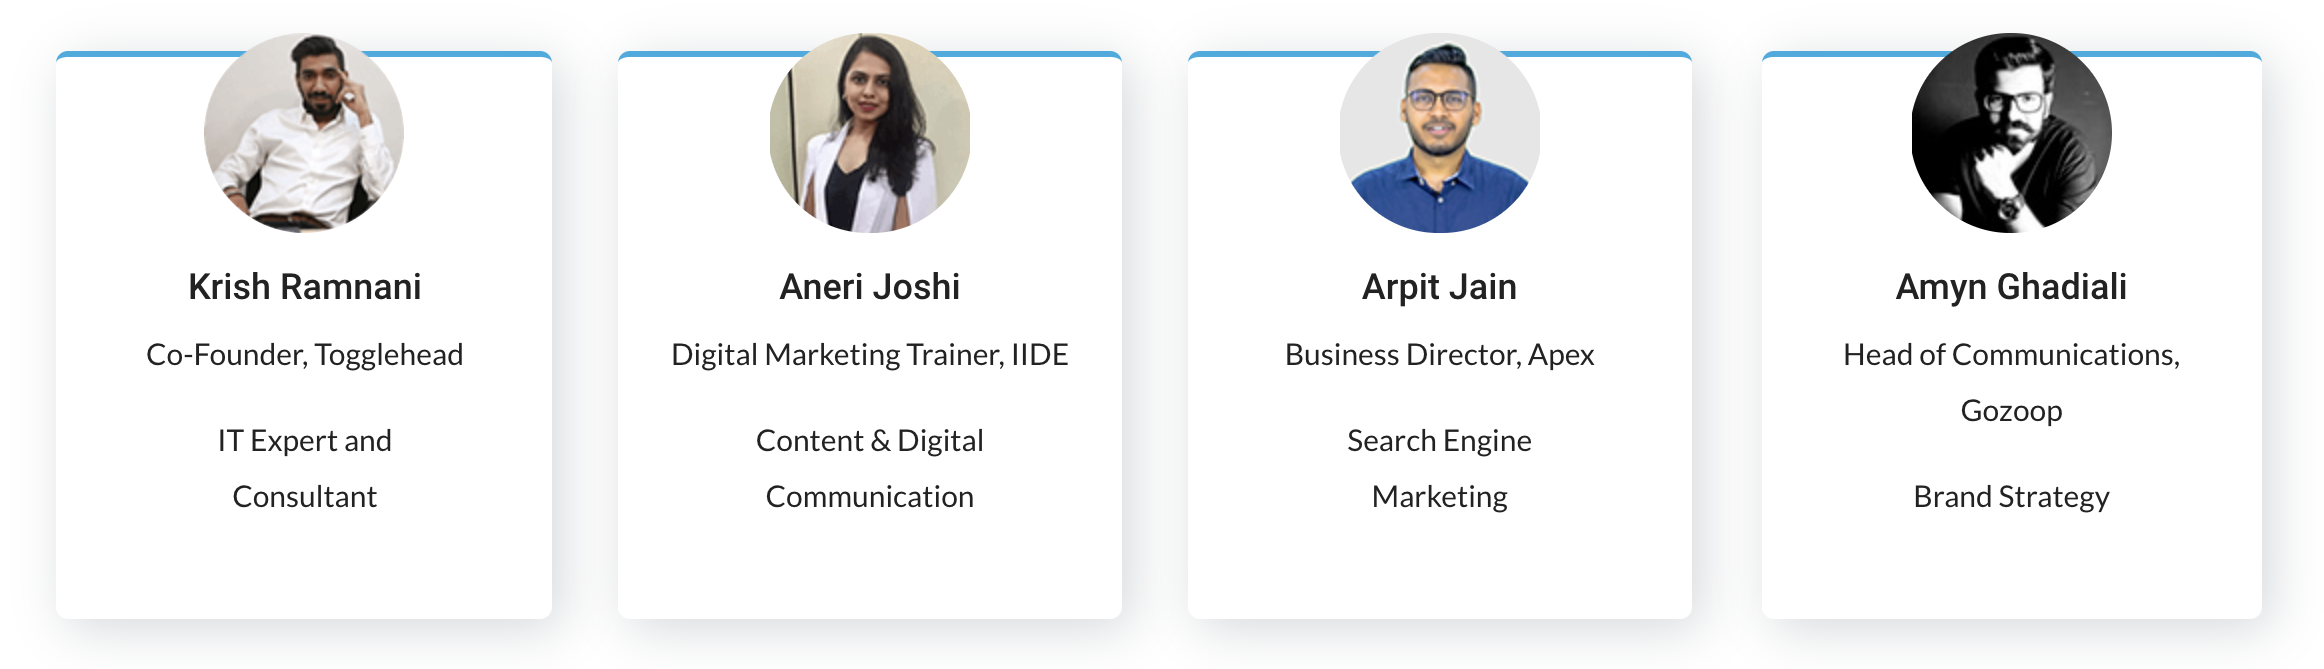 Digital Marketing Course in Udaipur - IIDE Faculty - Online Digital Marketing Course